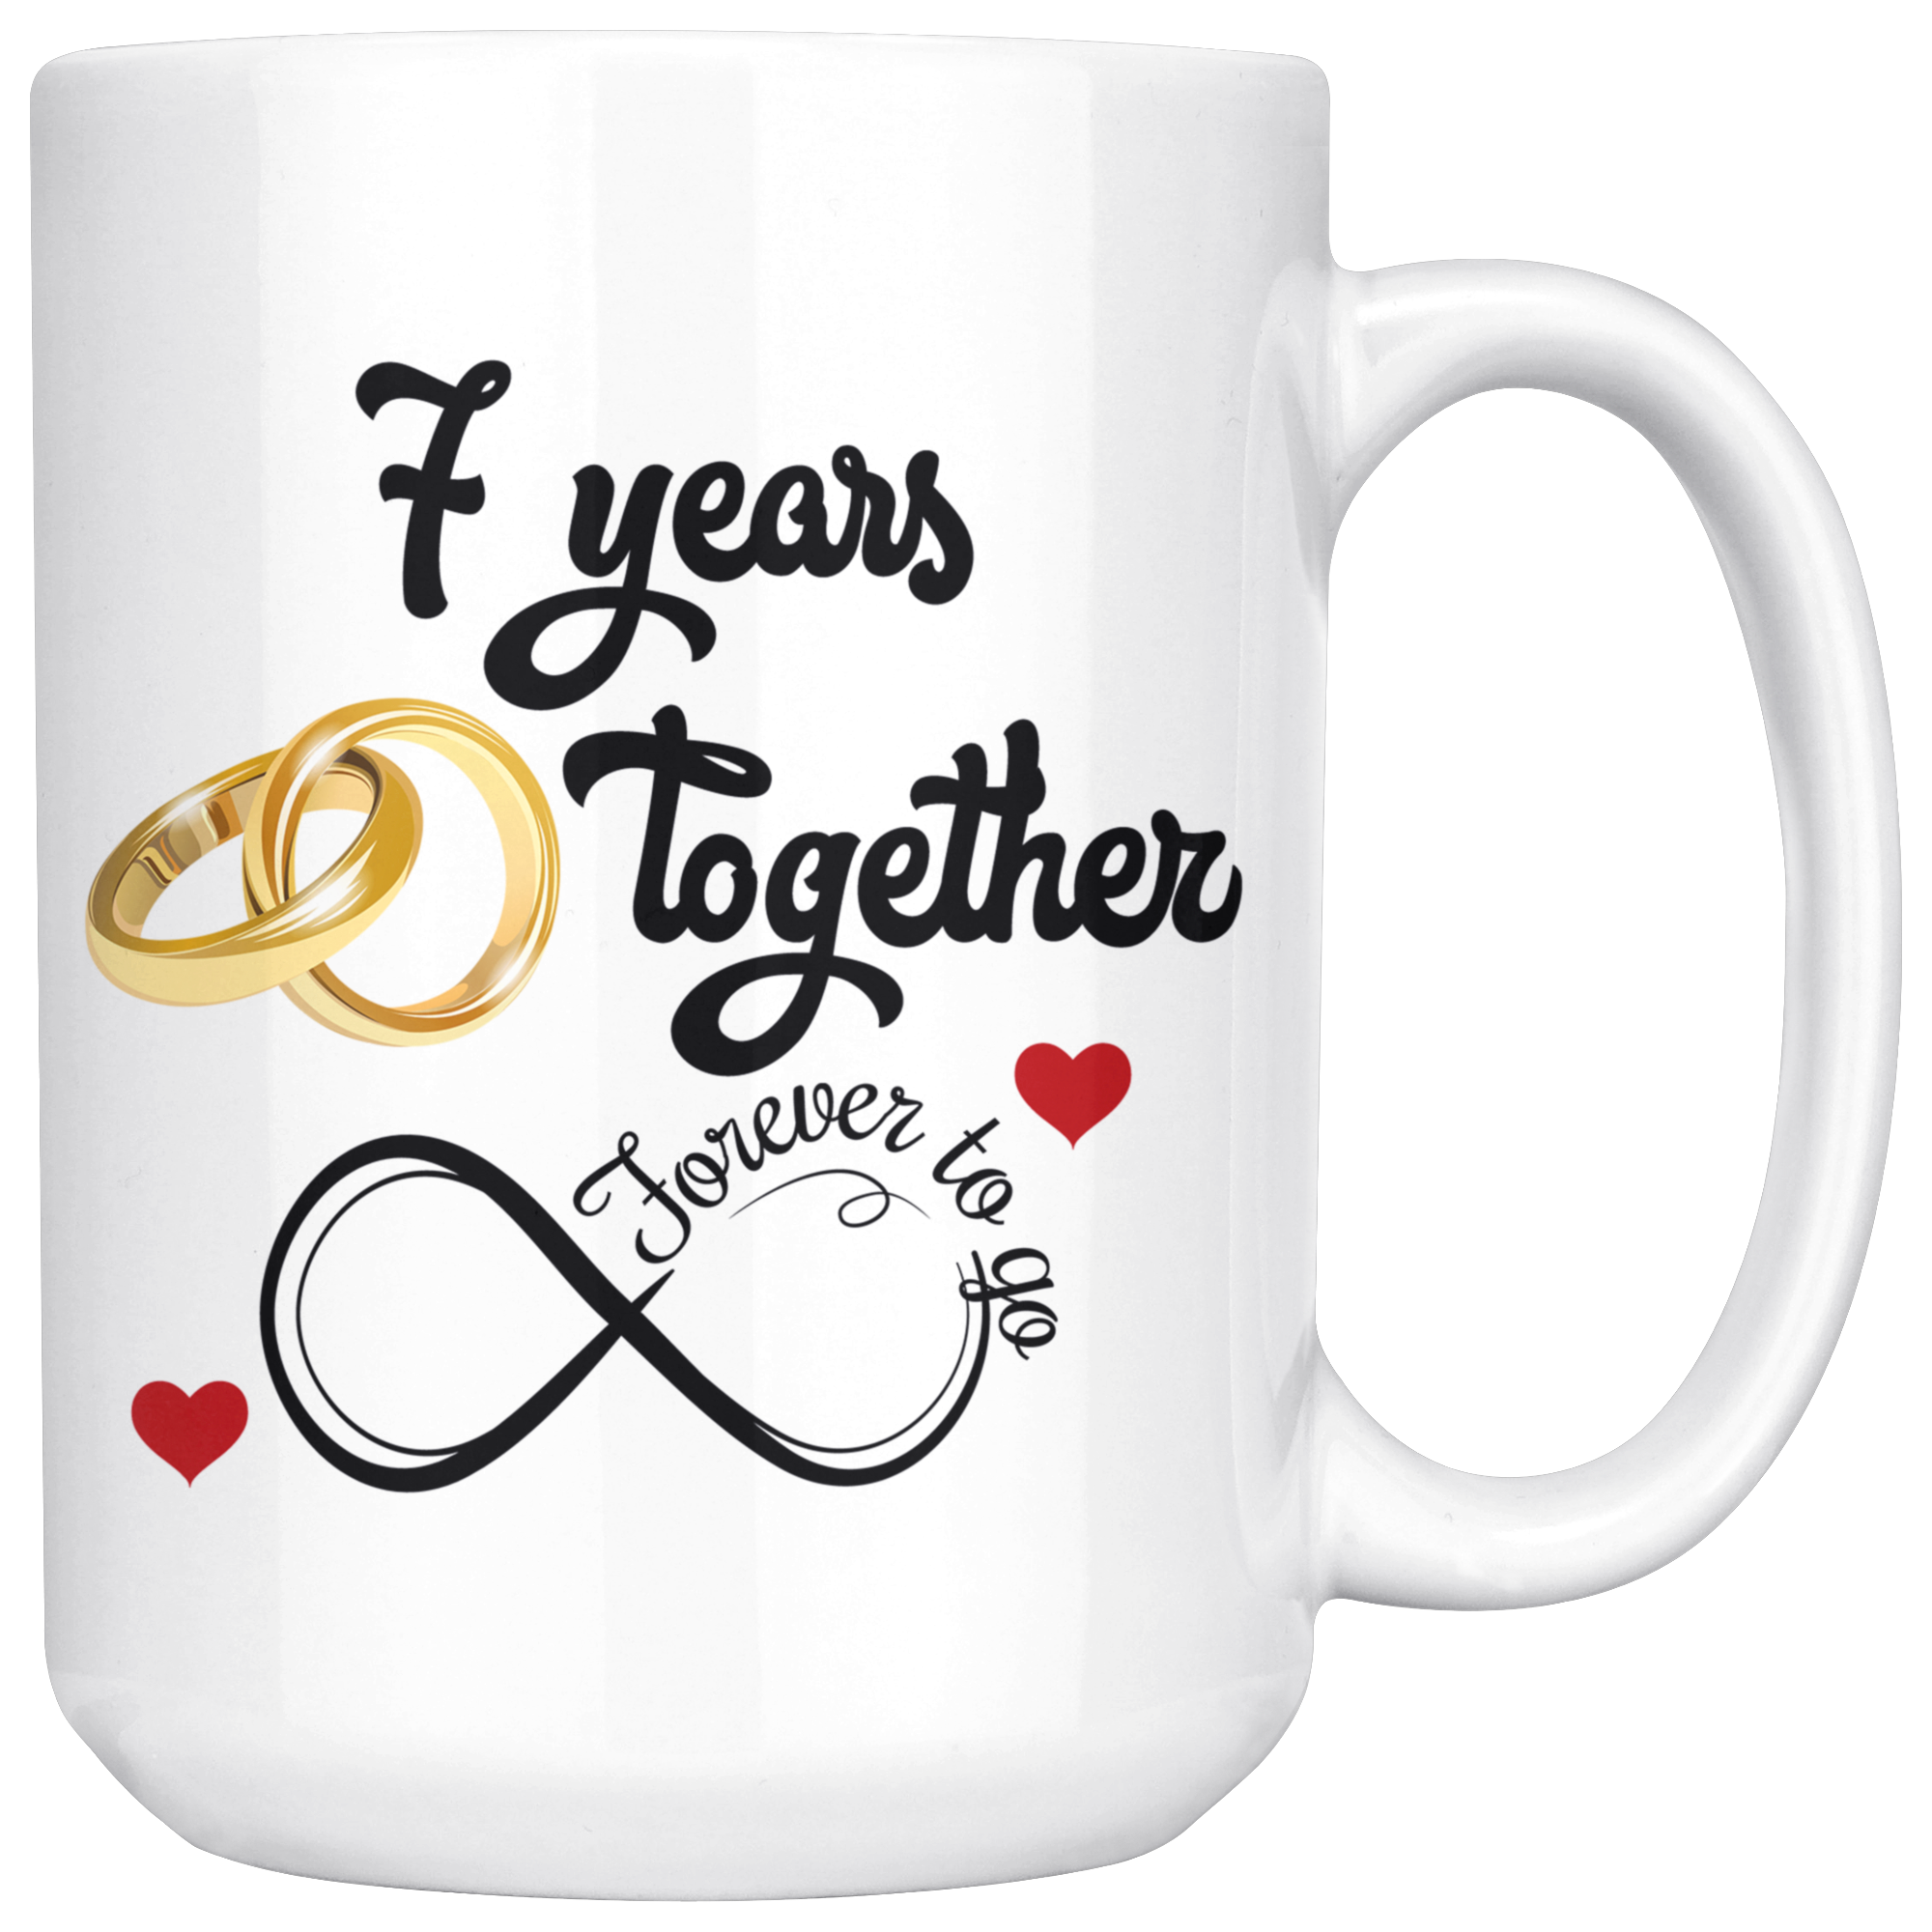 7th Wedding Anniversary.7th Wedding Anniversary Gift For Him And Her 7th Anniversary Mug For Husband Wife 7 Years Together Married 7 Years 7 Years With Her 15 Oz